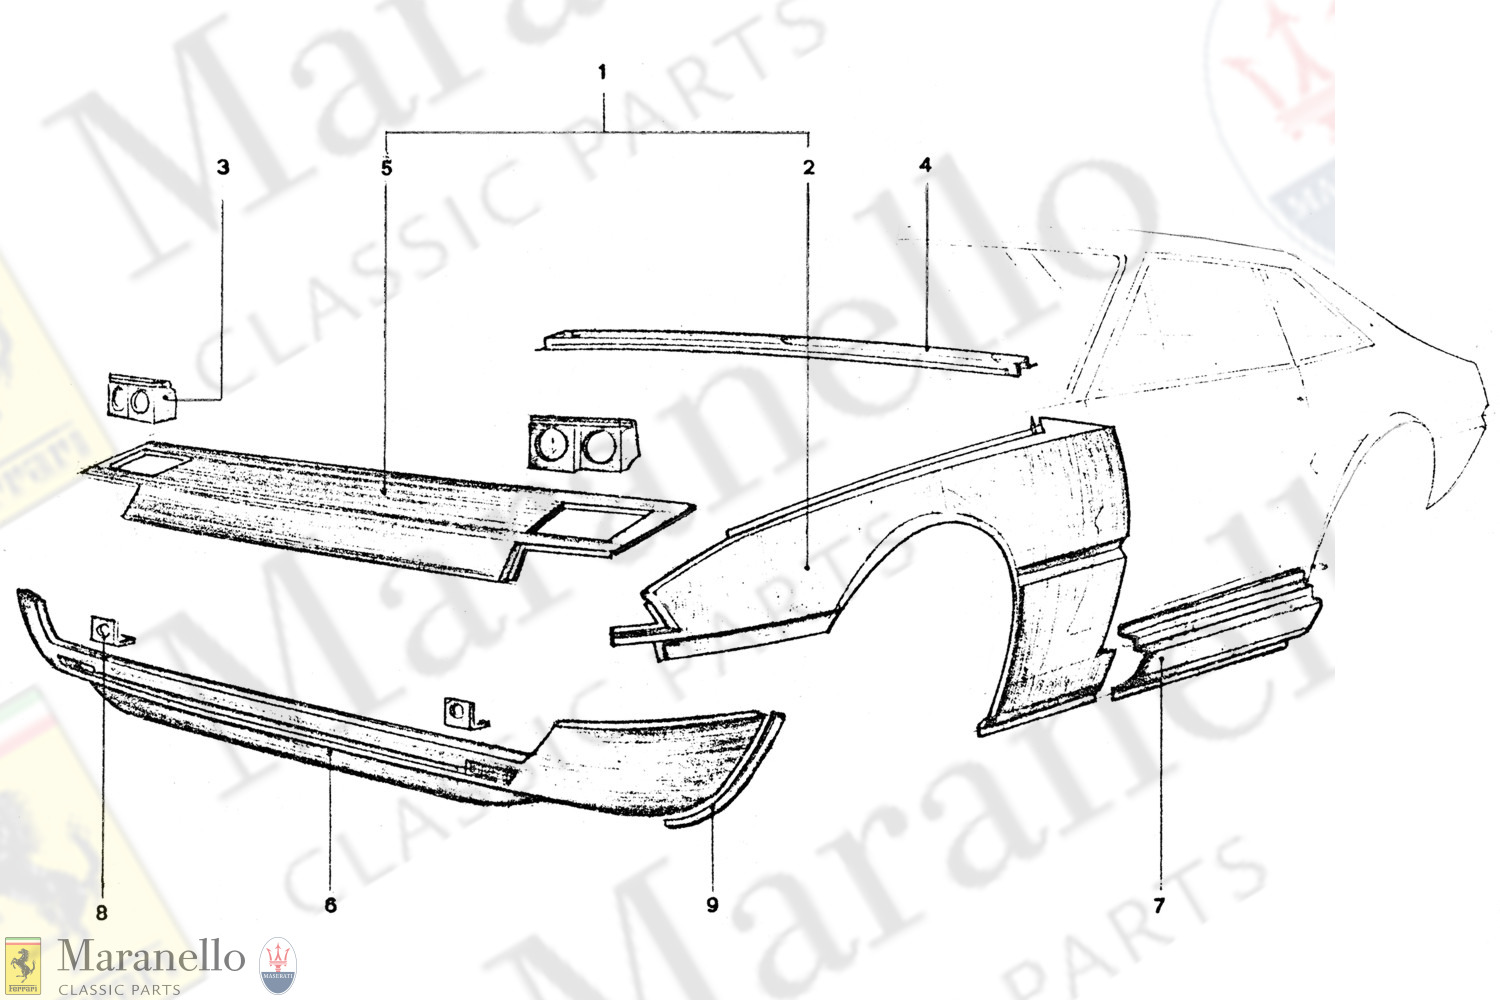 204 - Front Body Panels